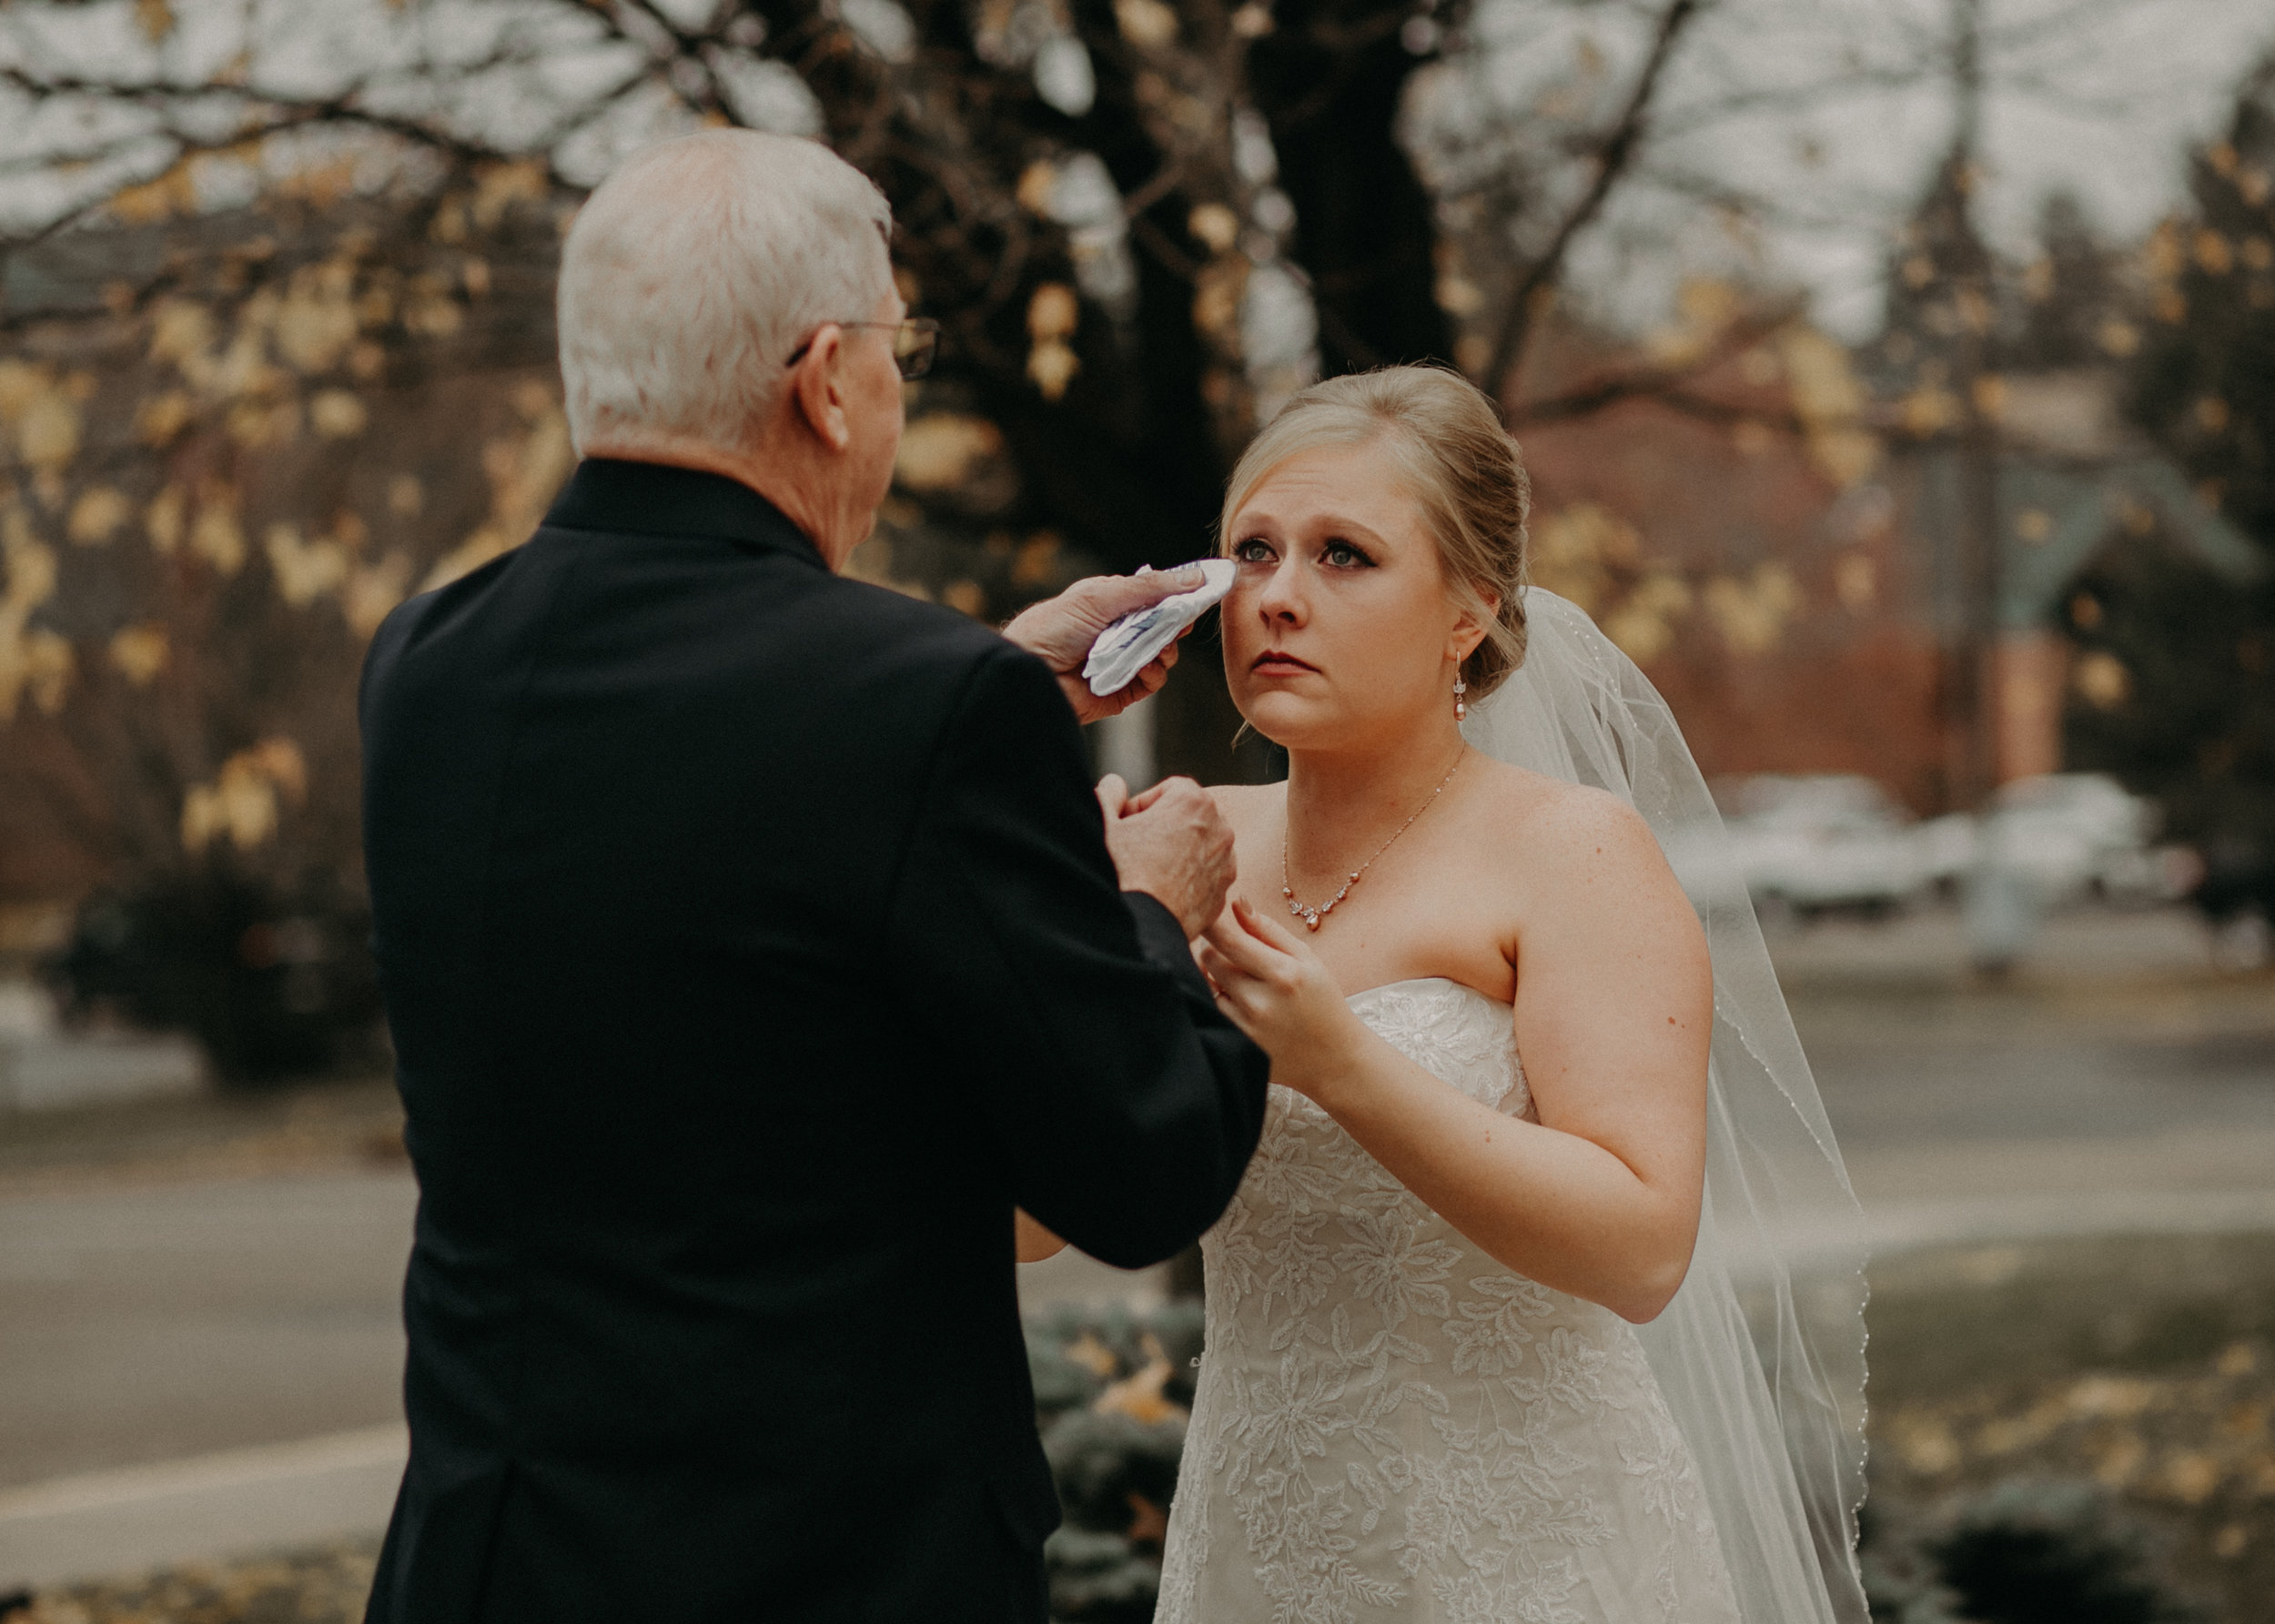 bride becomes emotional as her grandfather wipes her cheek after a first look on her wedding day at St Bridget's Catholic Church in River Falls WI